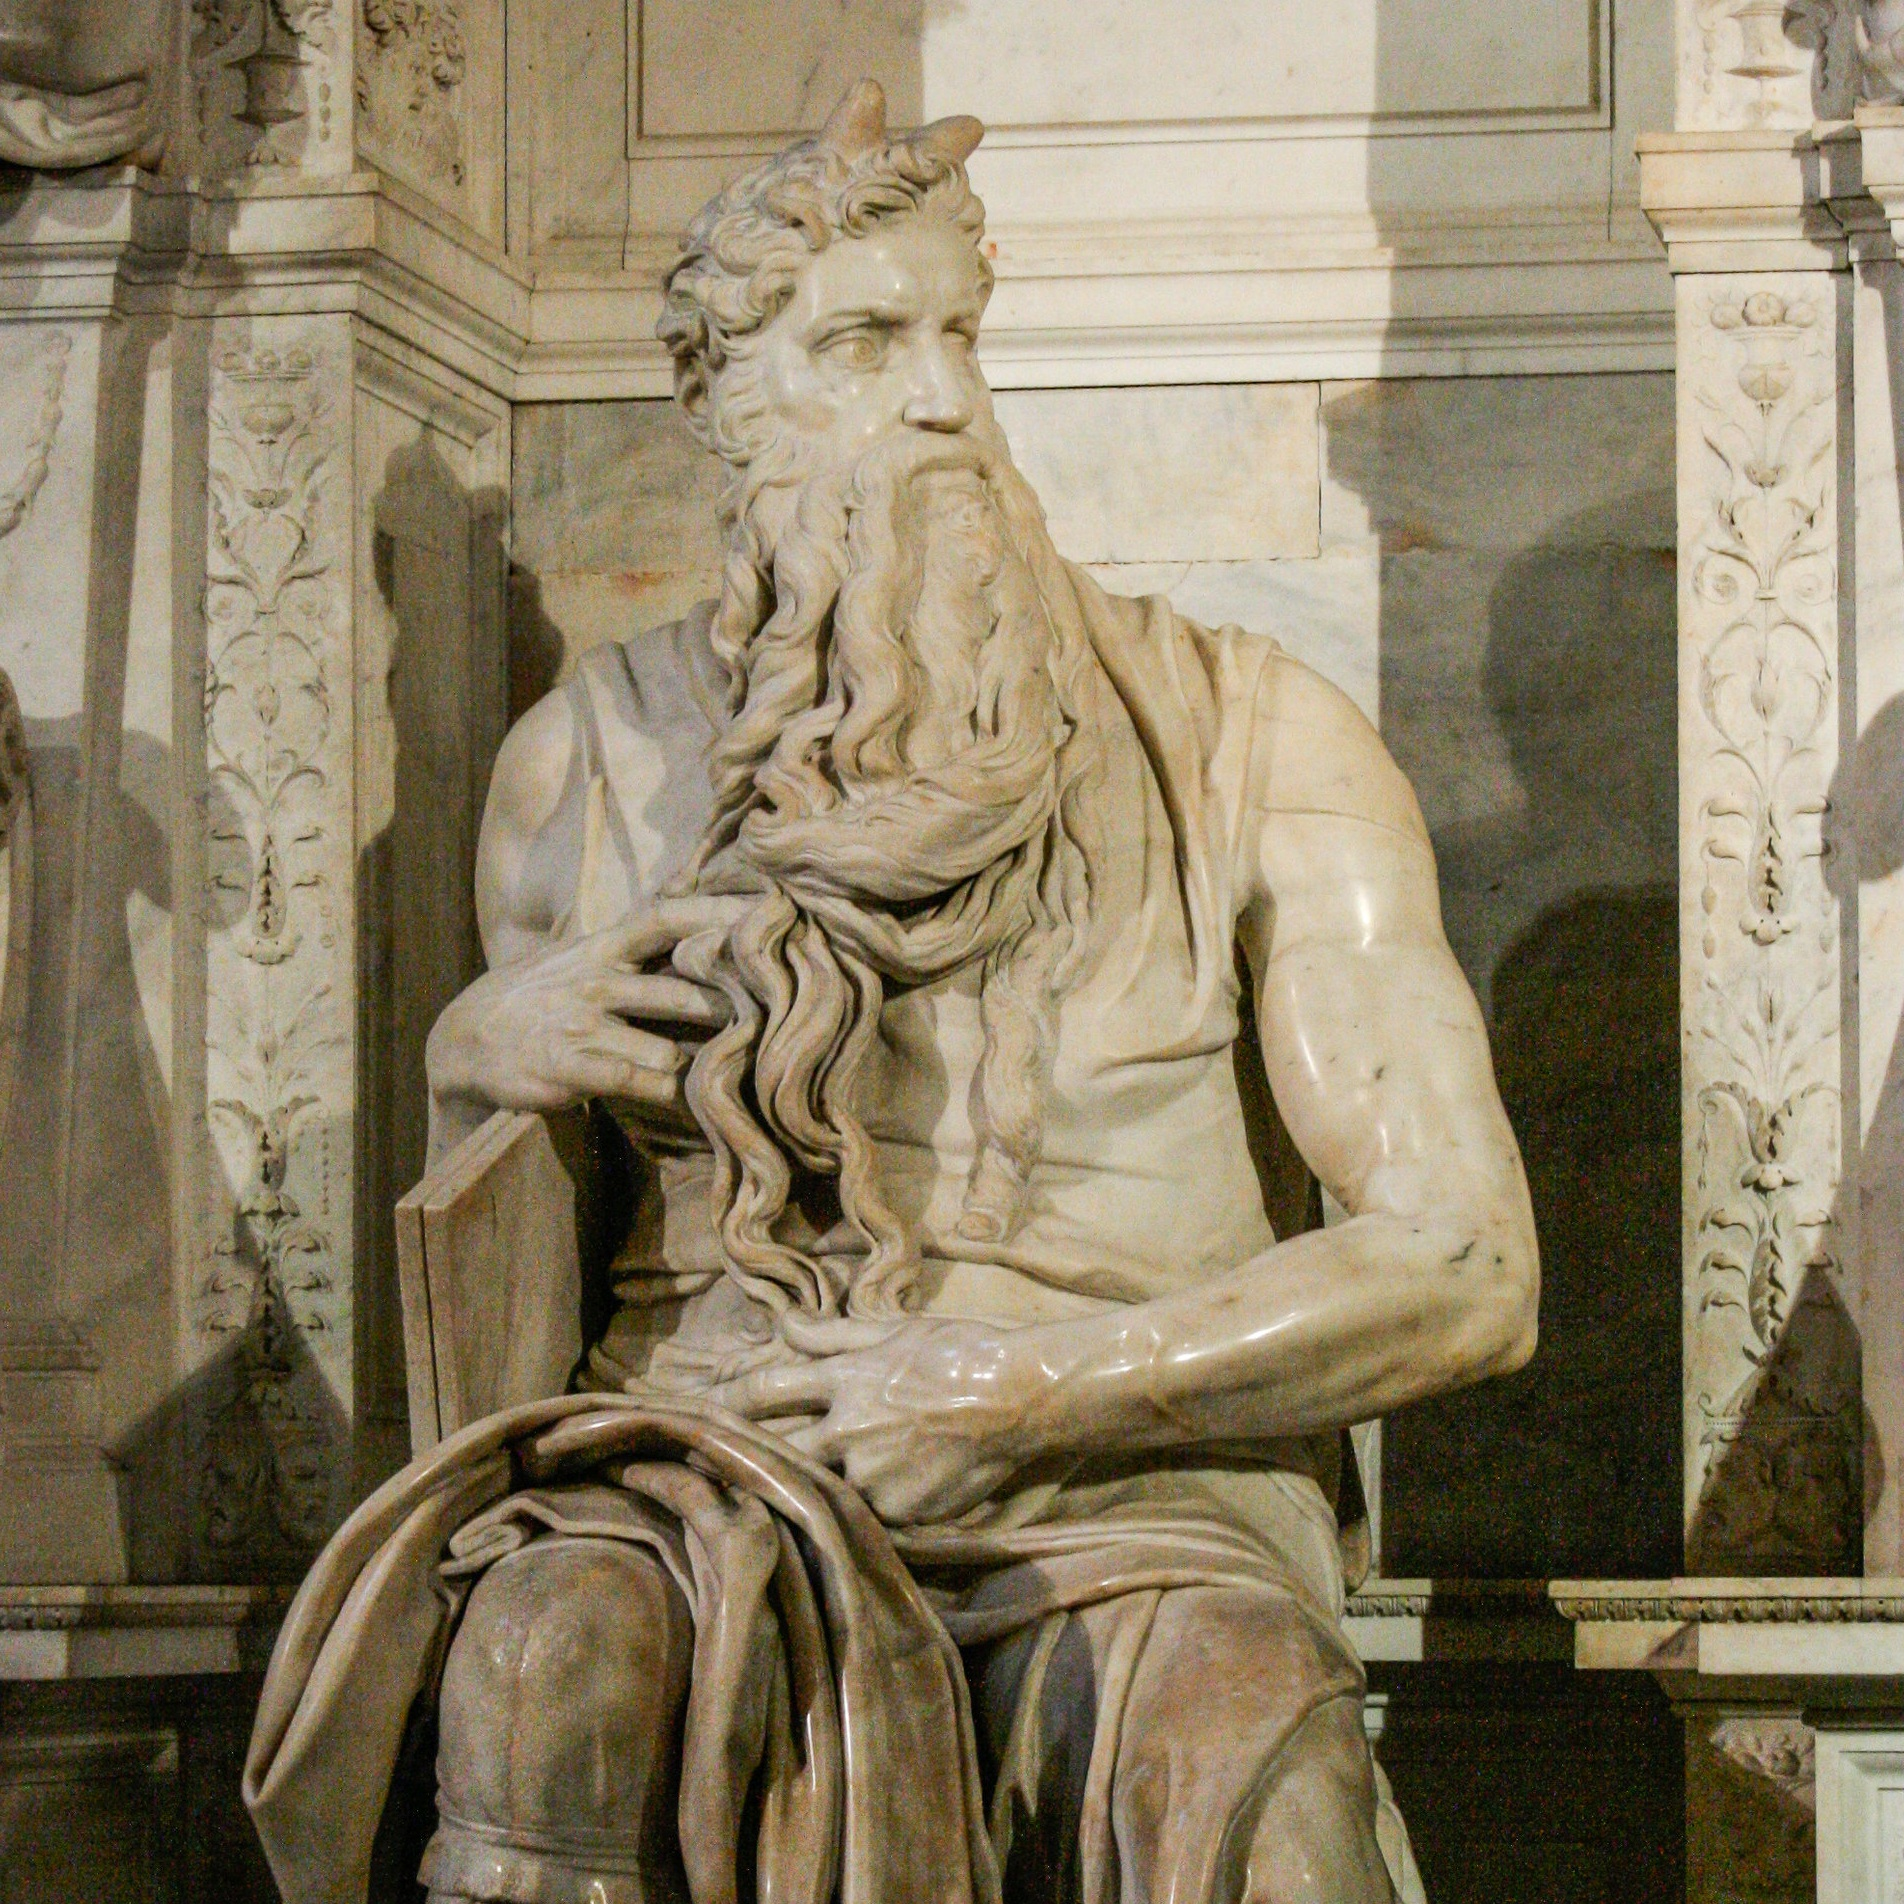 Michelangelo's Moses at San Pietro in Vincoli